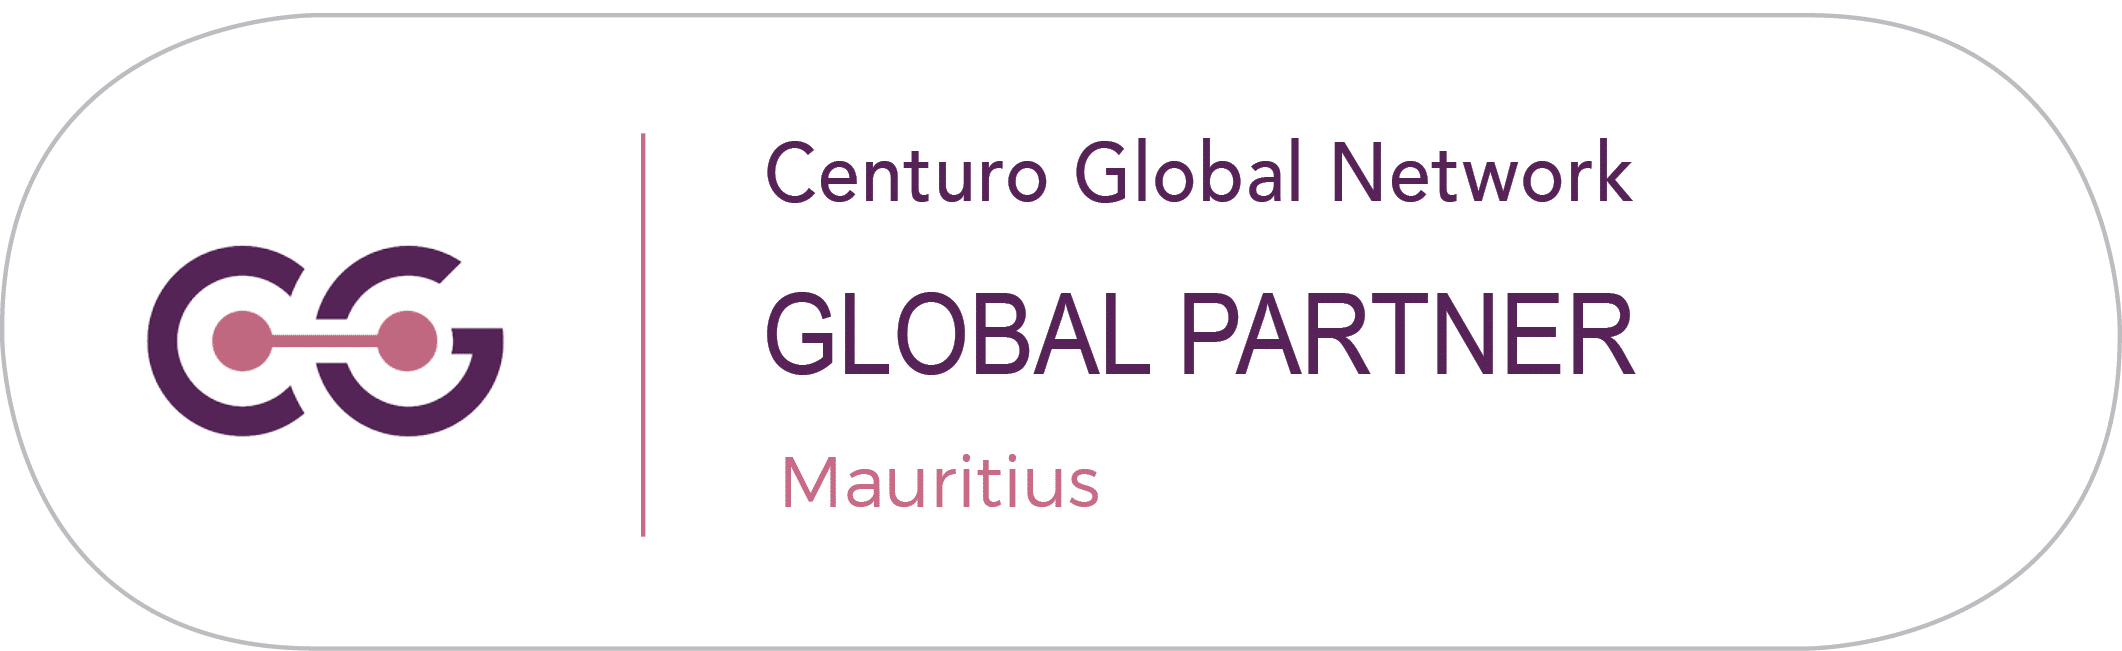 Century Global Network partner for Mauritius